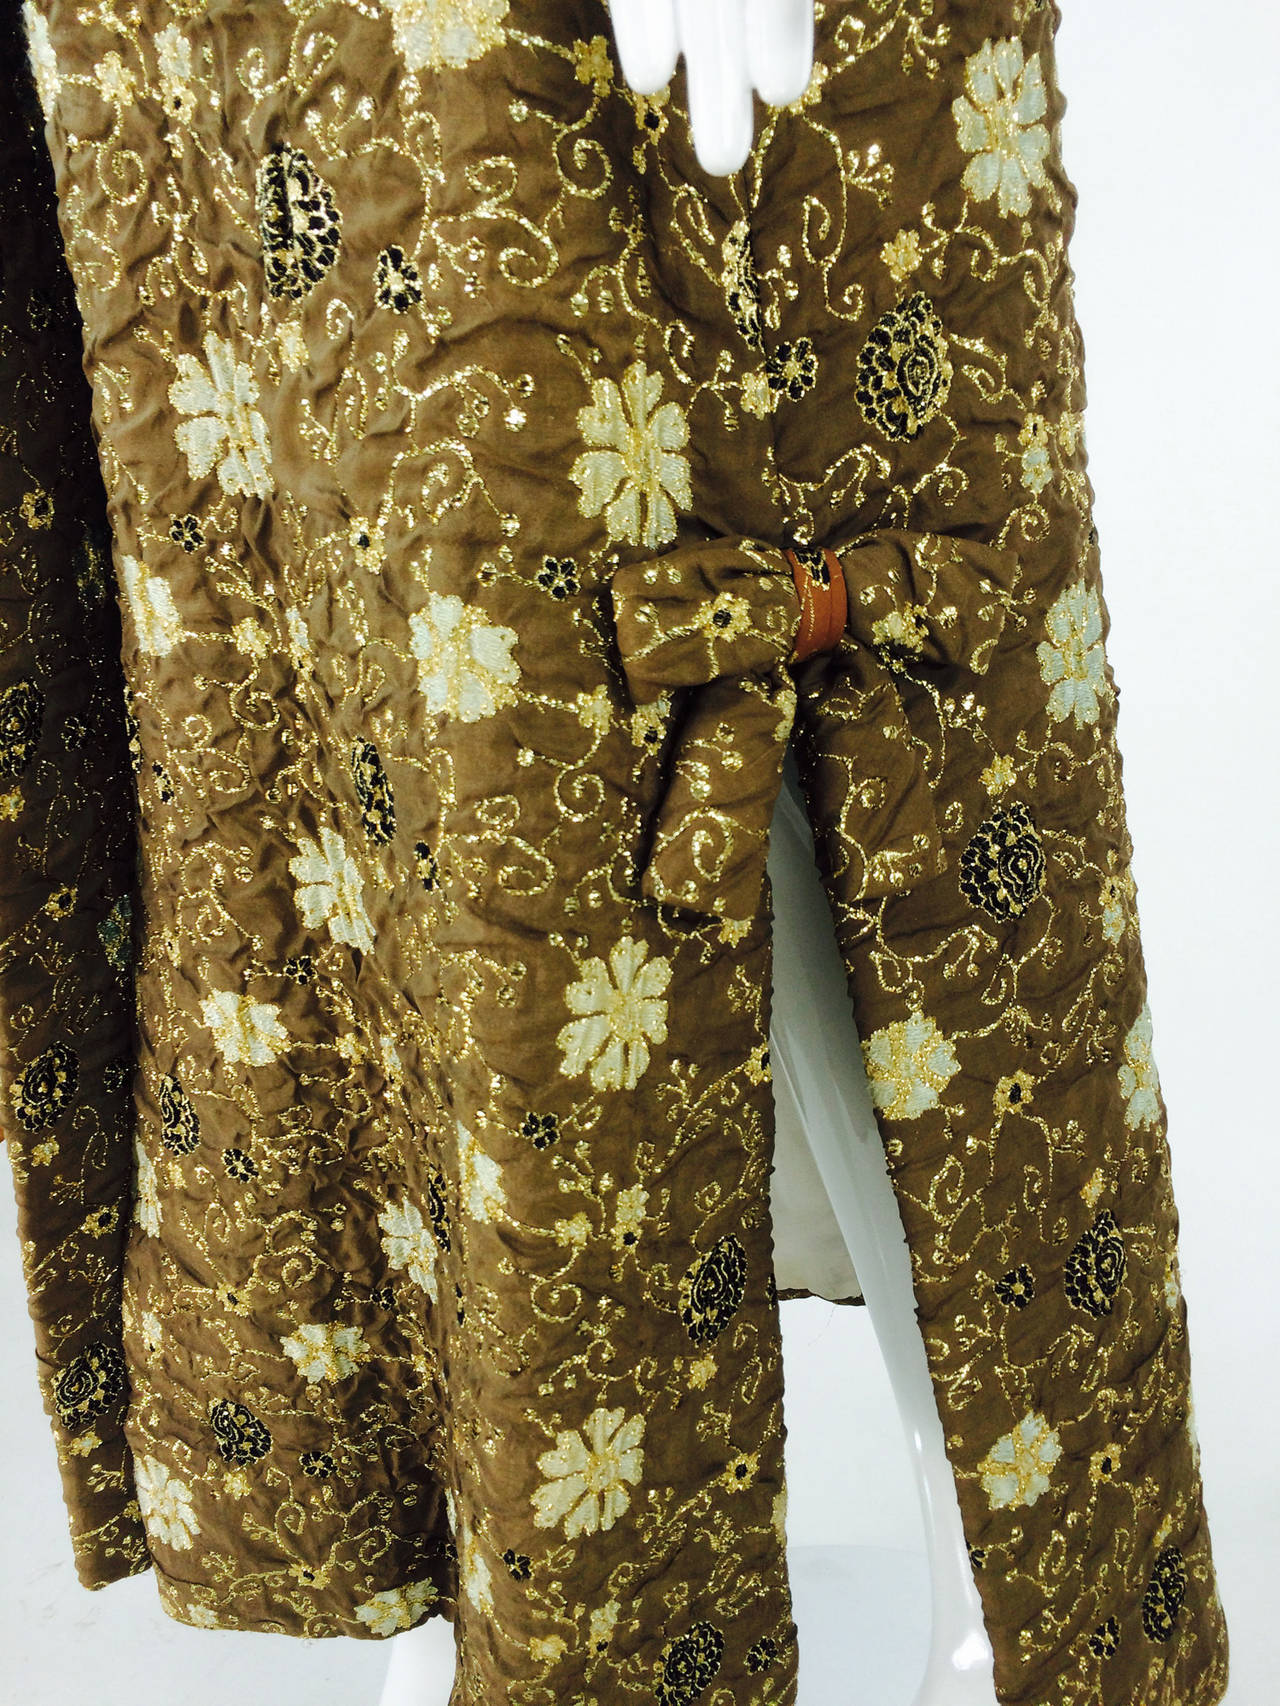 Bob Bugnand for Sam Friedlander mink cuff embroidered evening coat 1960s 9